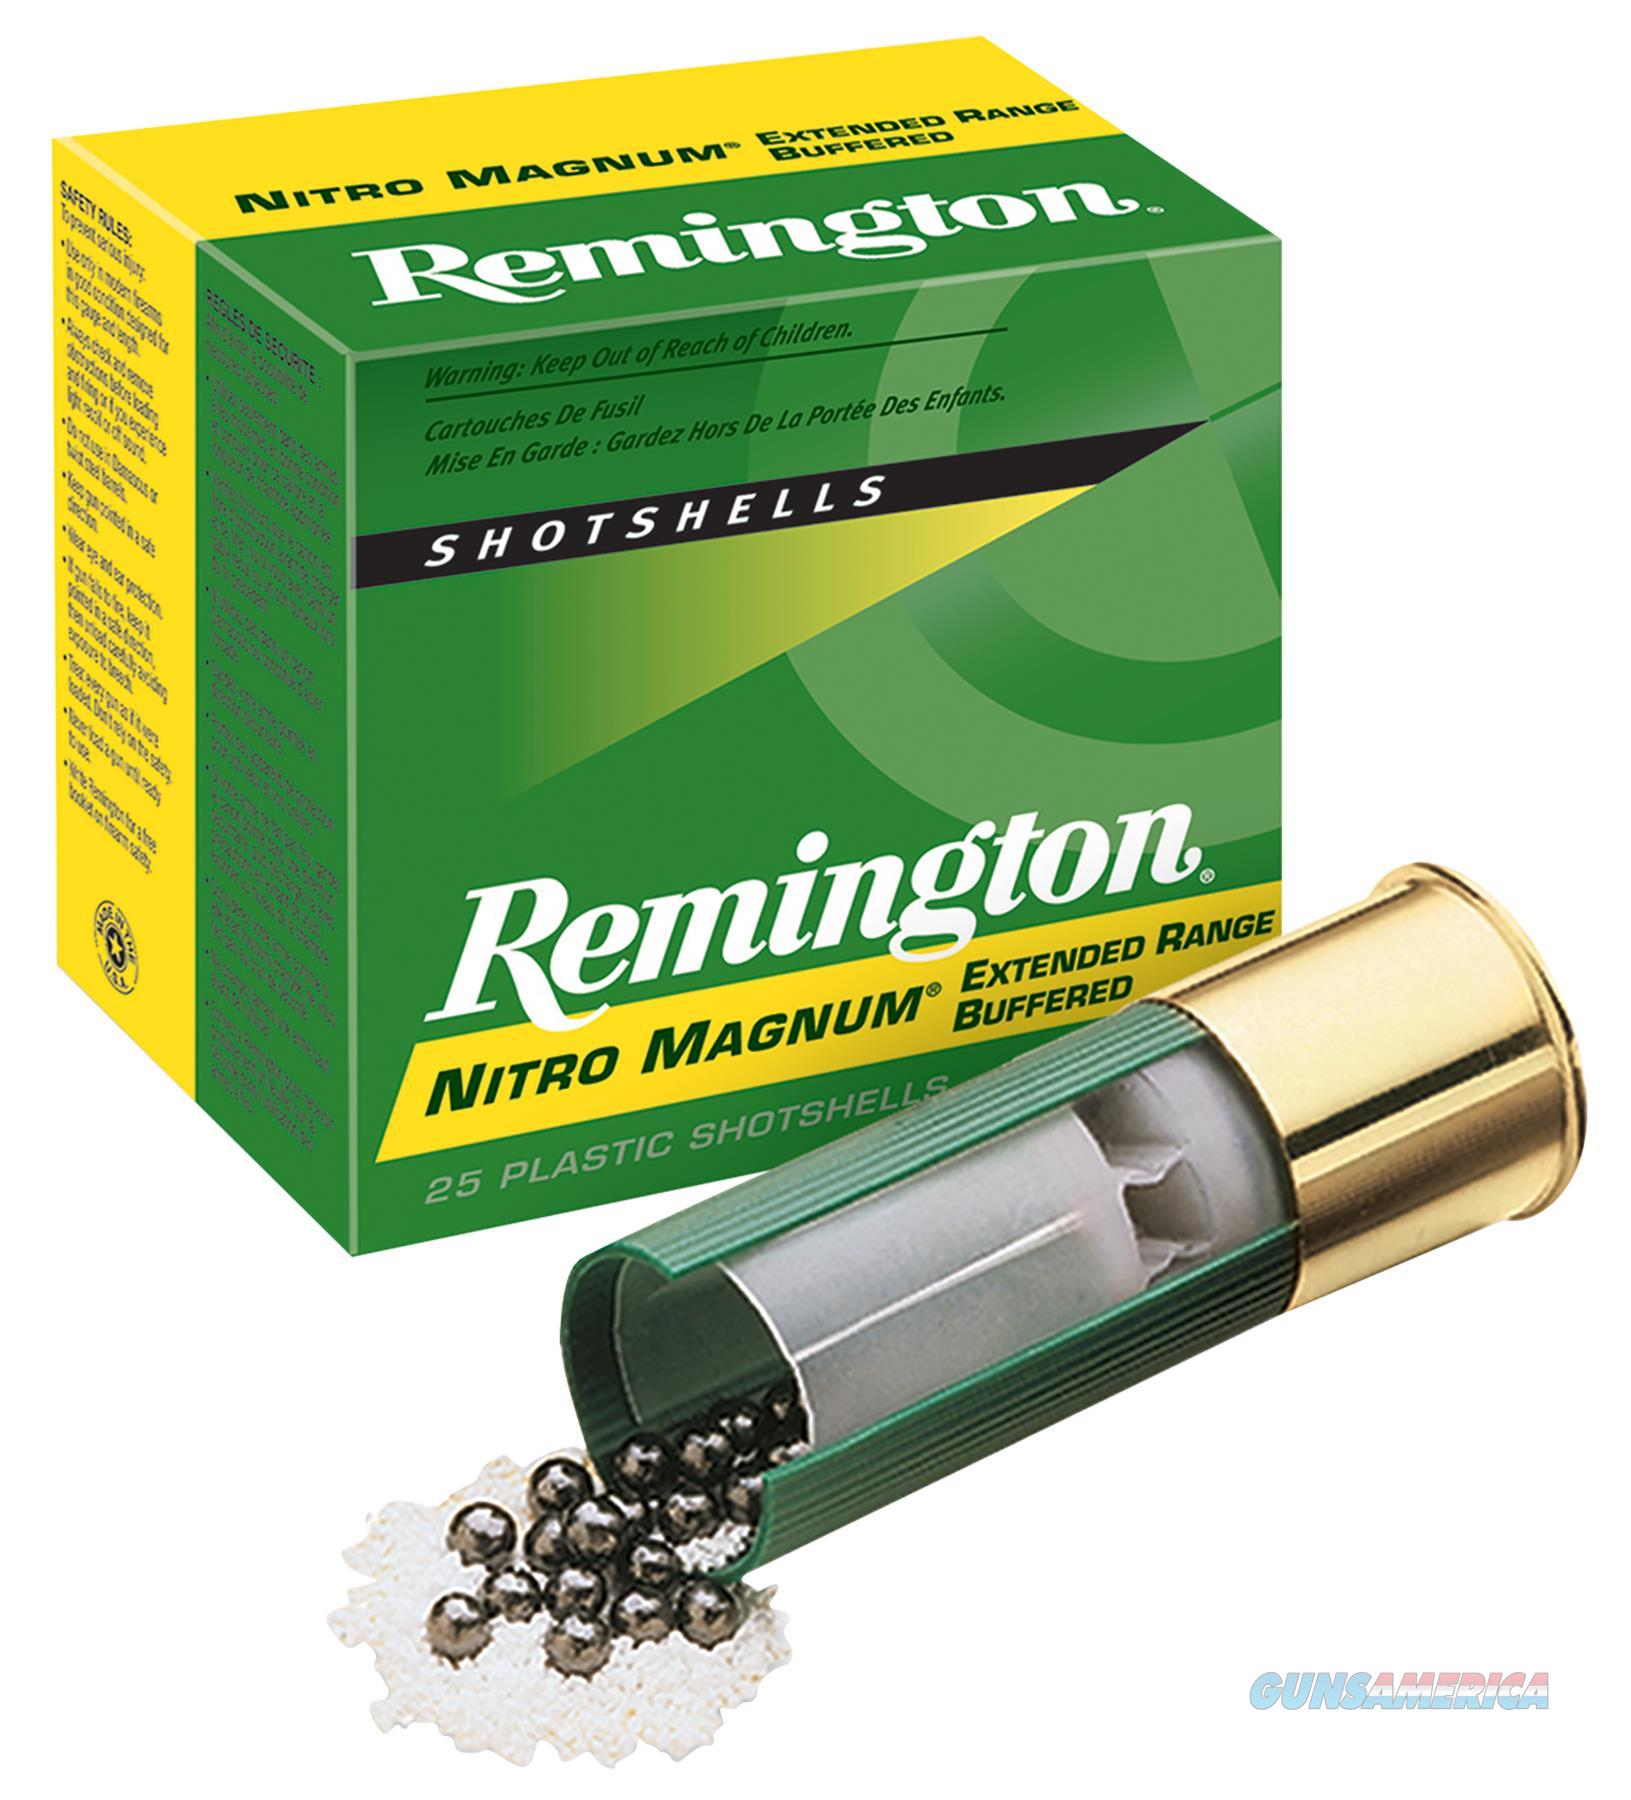 "Rem Nm124 Nitro Mag Loads 12 Ga 3"" 1-5/8 Oz 4 Shot 25Box/10Case NM124  Non-Guns > Ammunition"